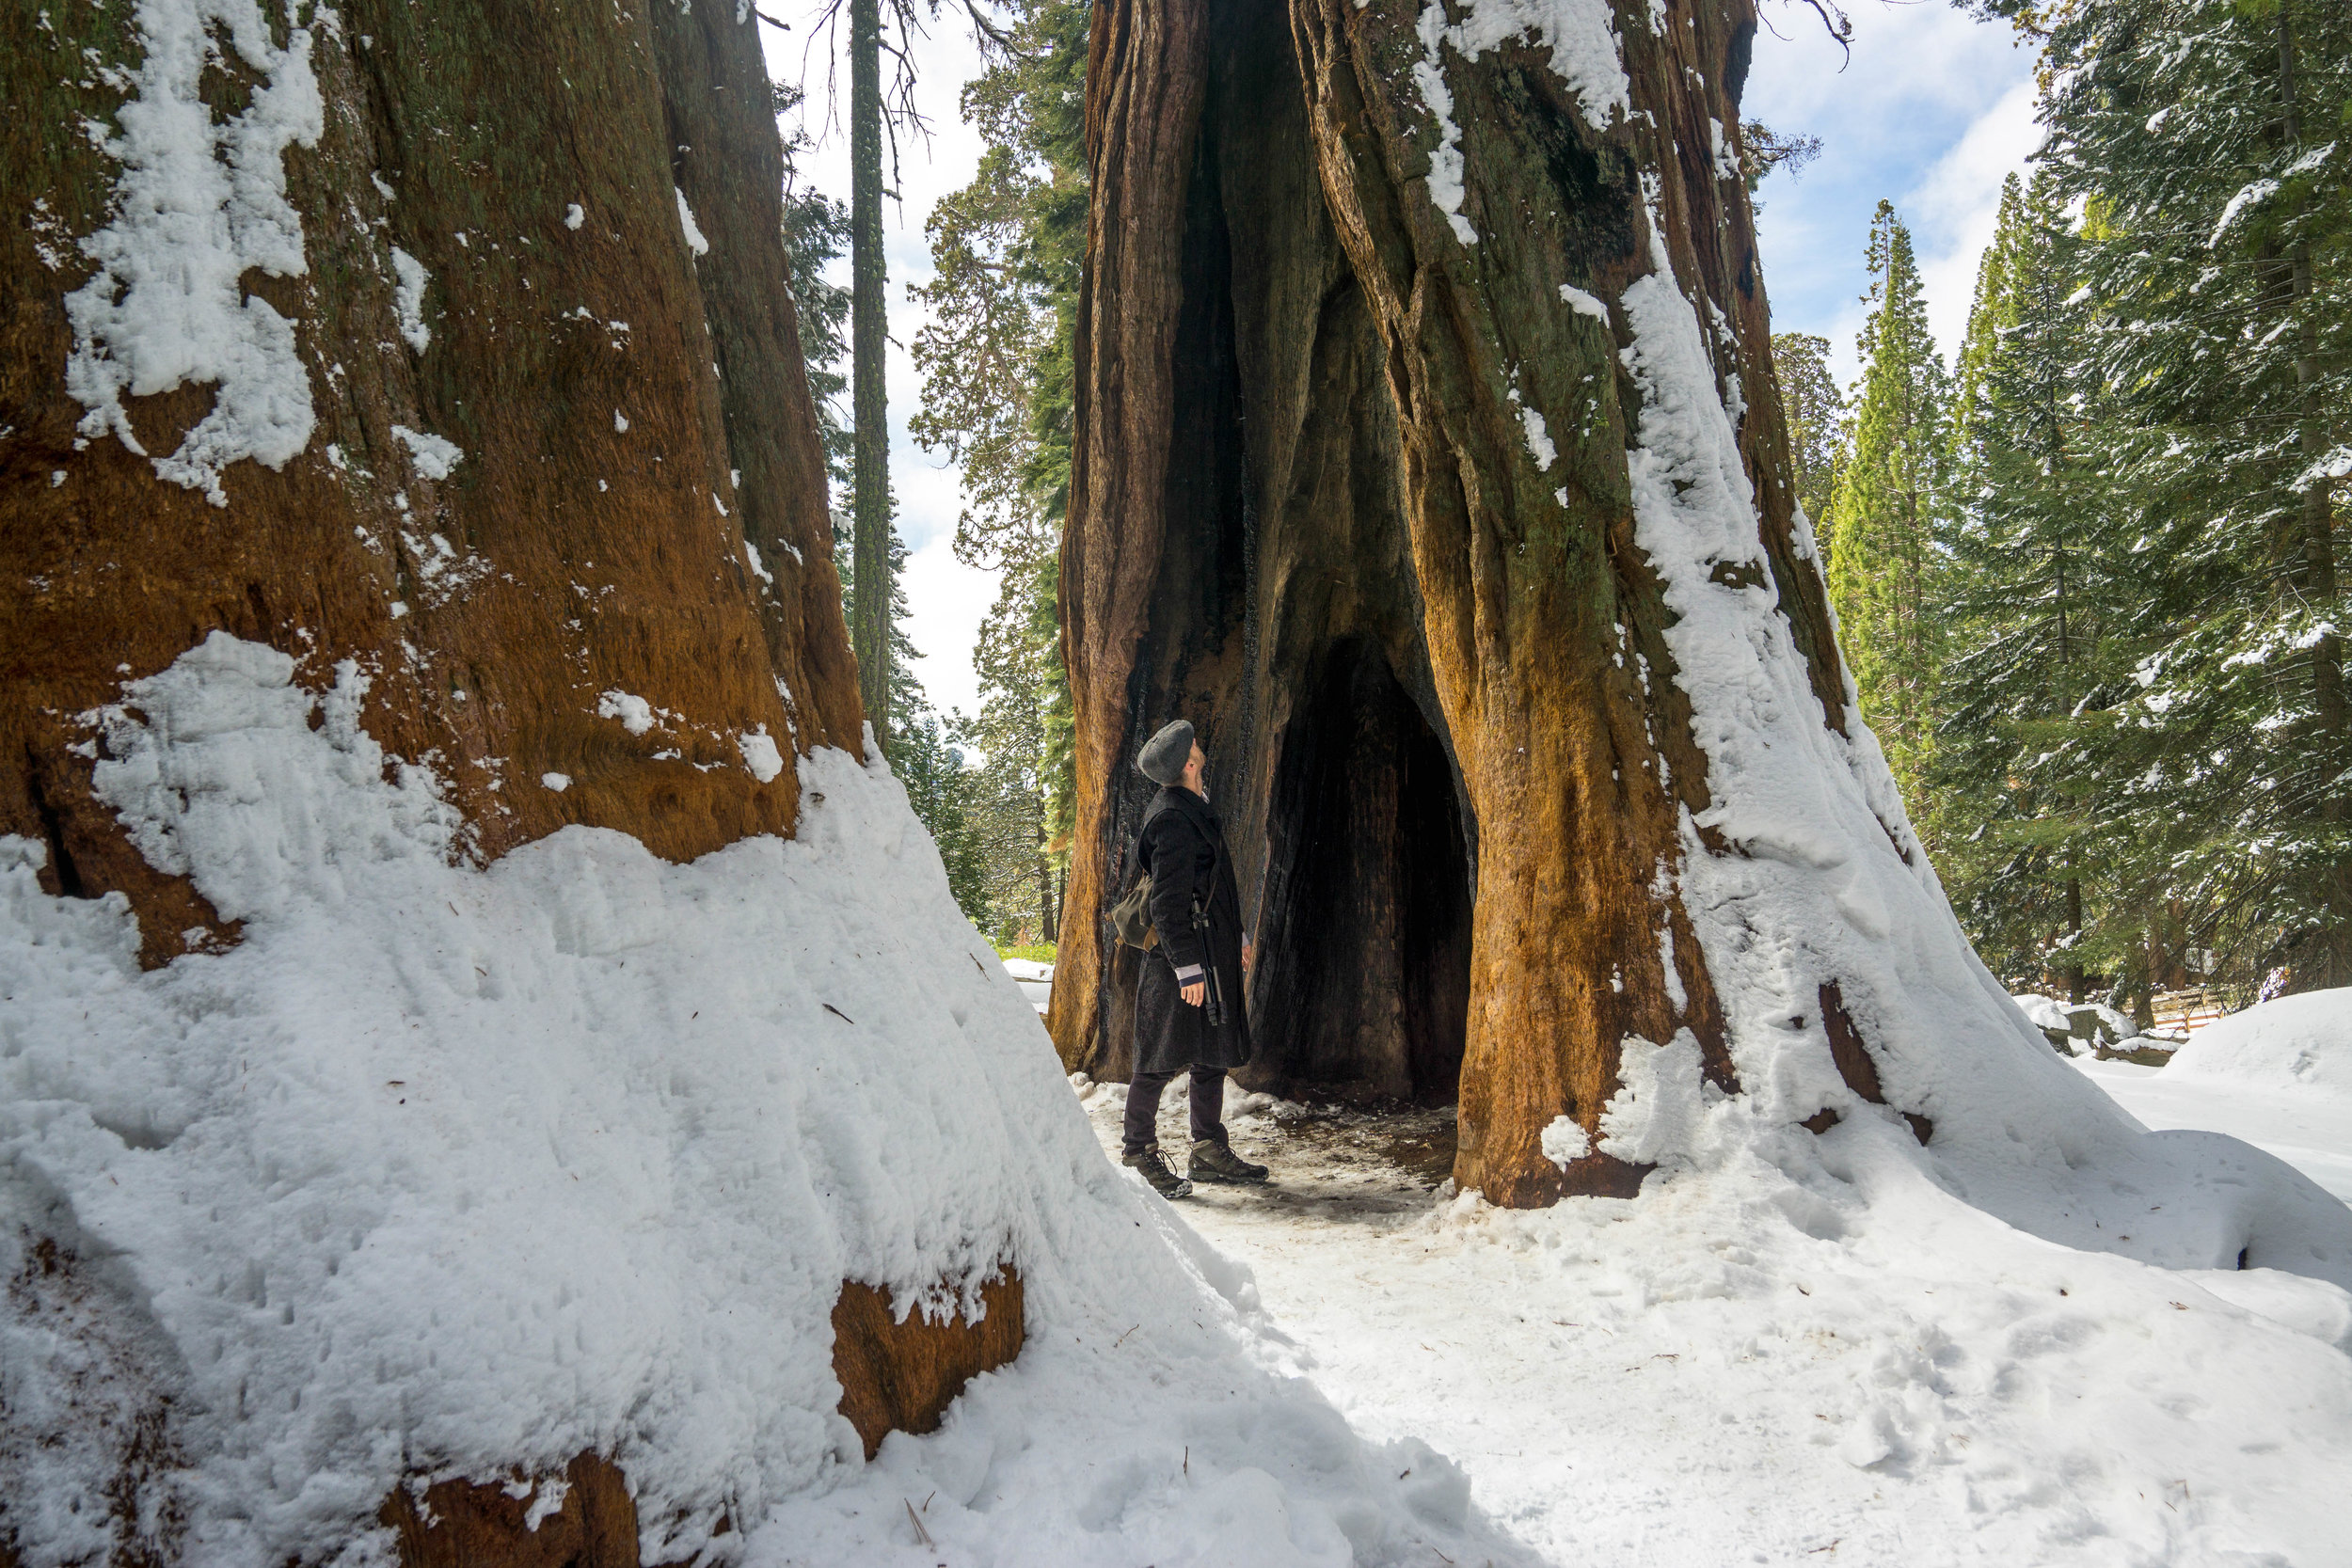 We wrap up our hike with one last grand view. Fittingly two sequoias stand like pillars of a gateway guiding our exit.